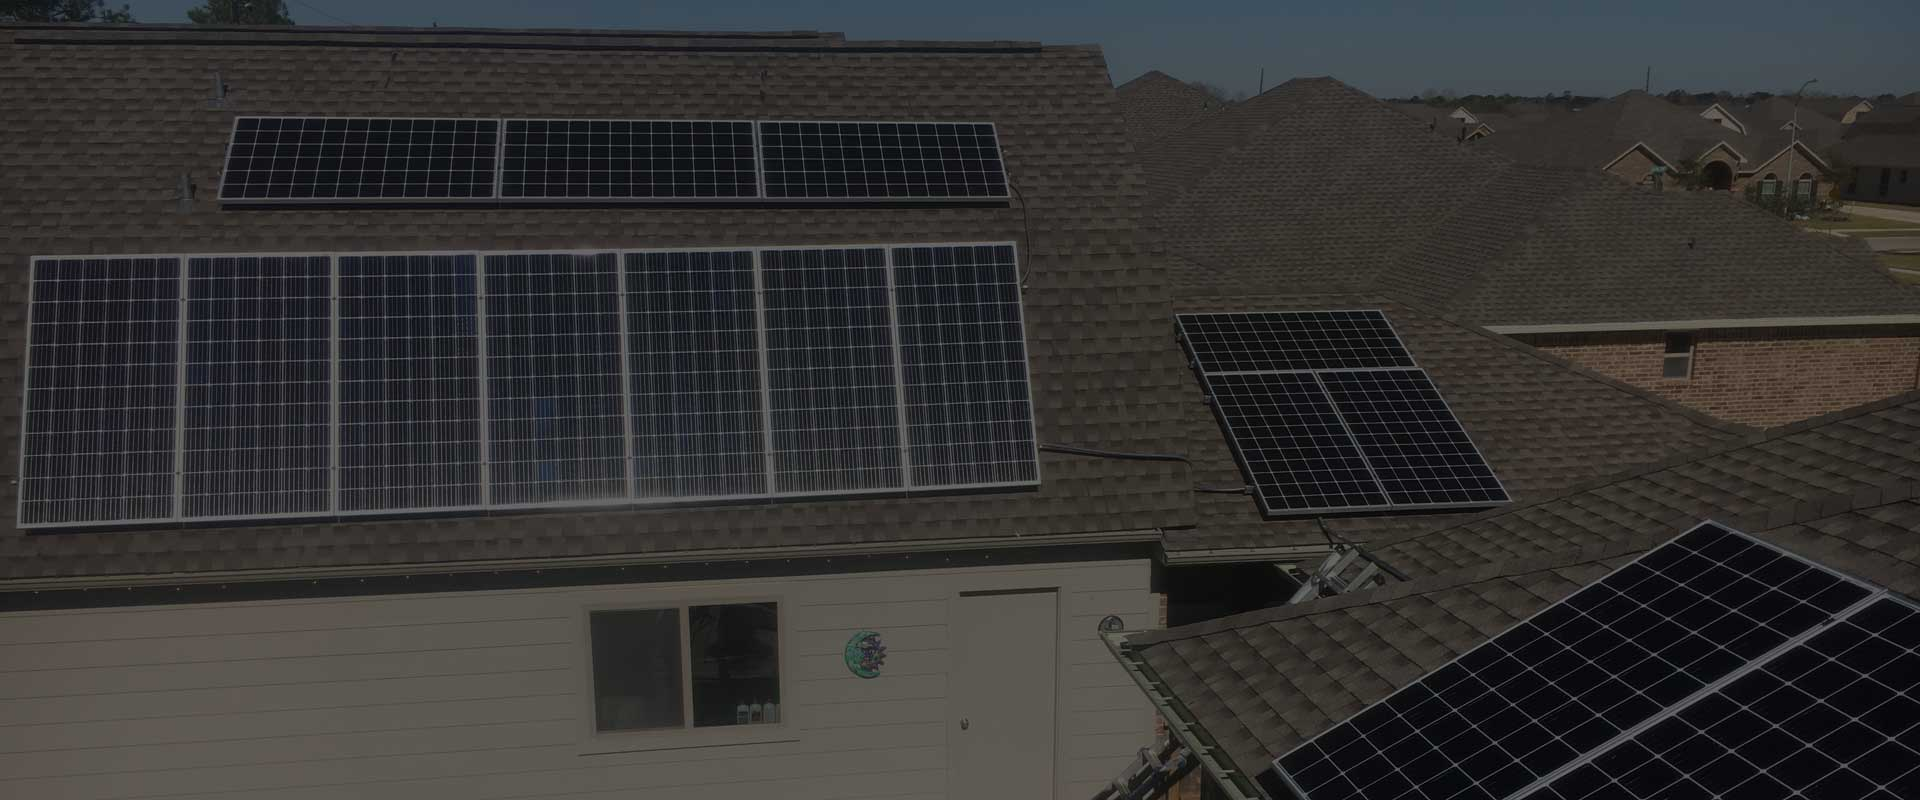 Silfab Solar panels installed by Sunshine Renewable Solutions